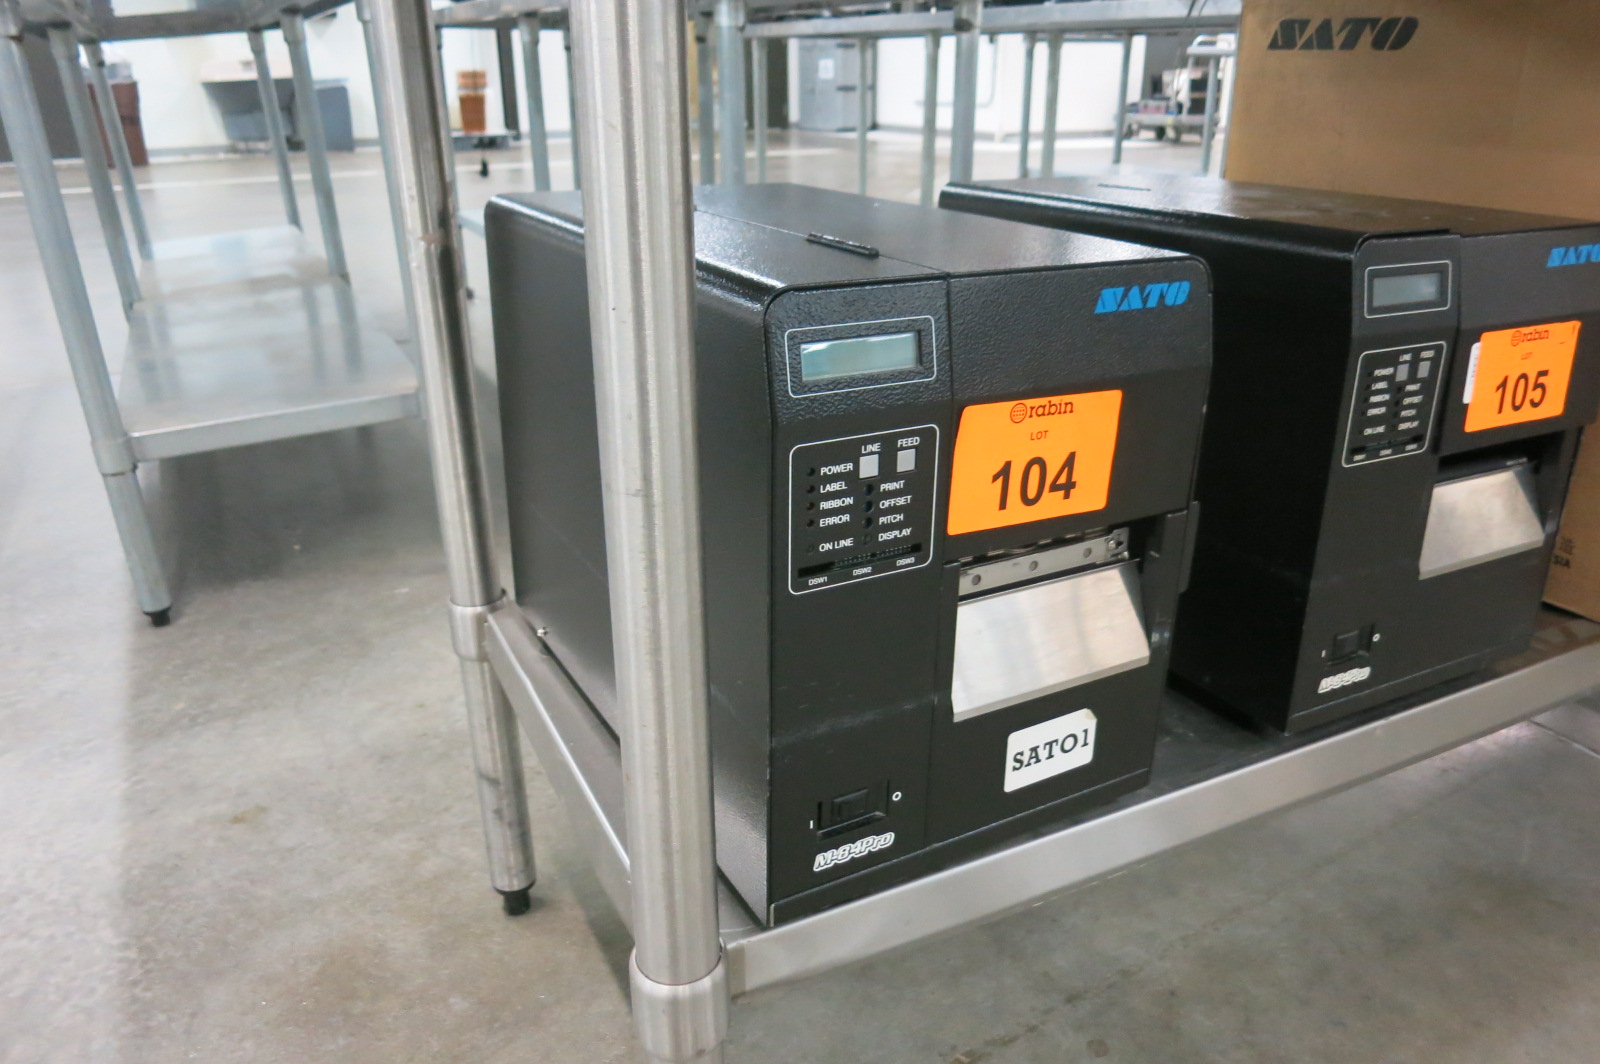 Lot 104 - Bar Code Printer